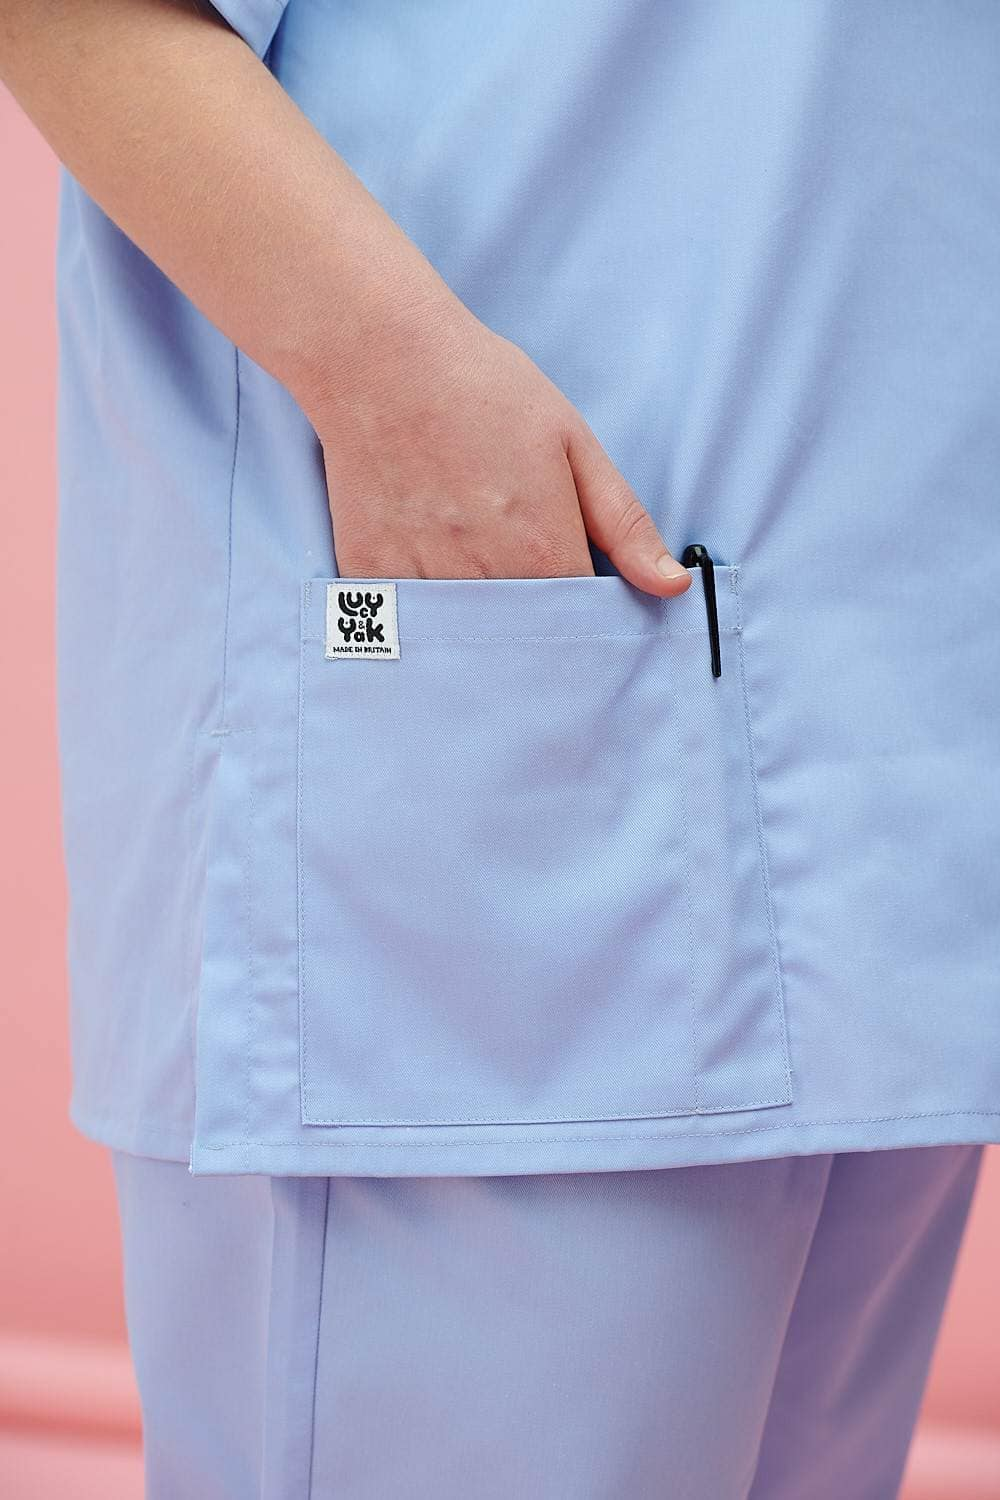 Lucy & Yak Tops Made in Britain - Scrubs Top in Sky Blue